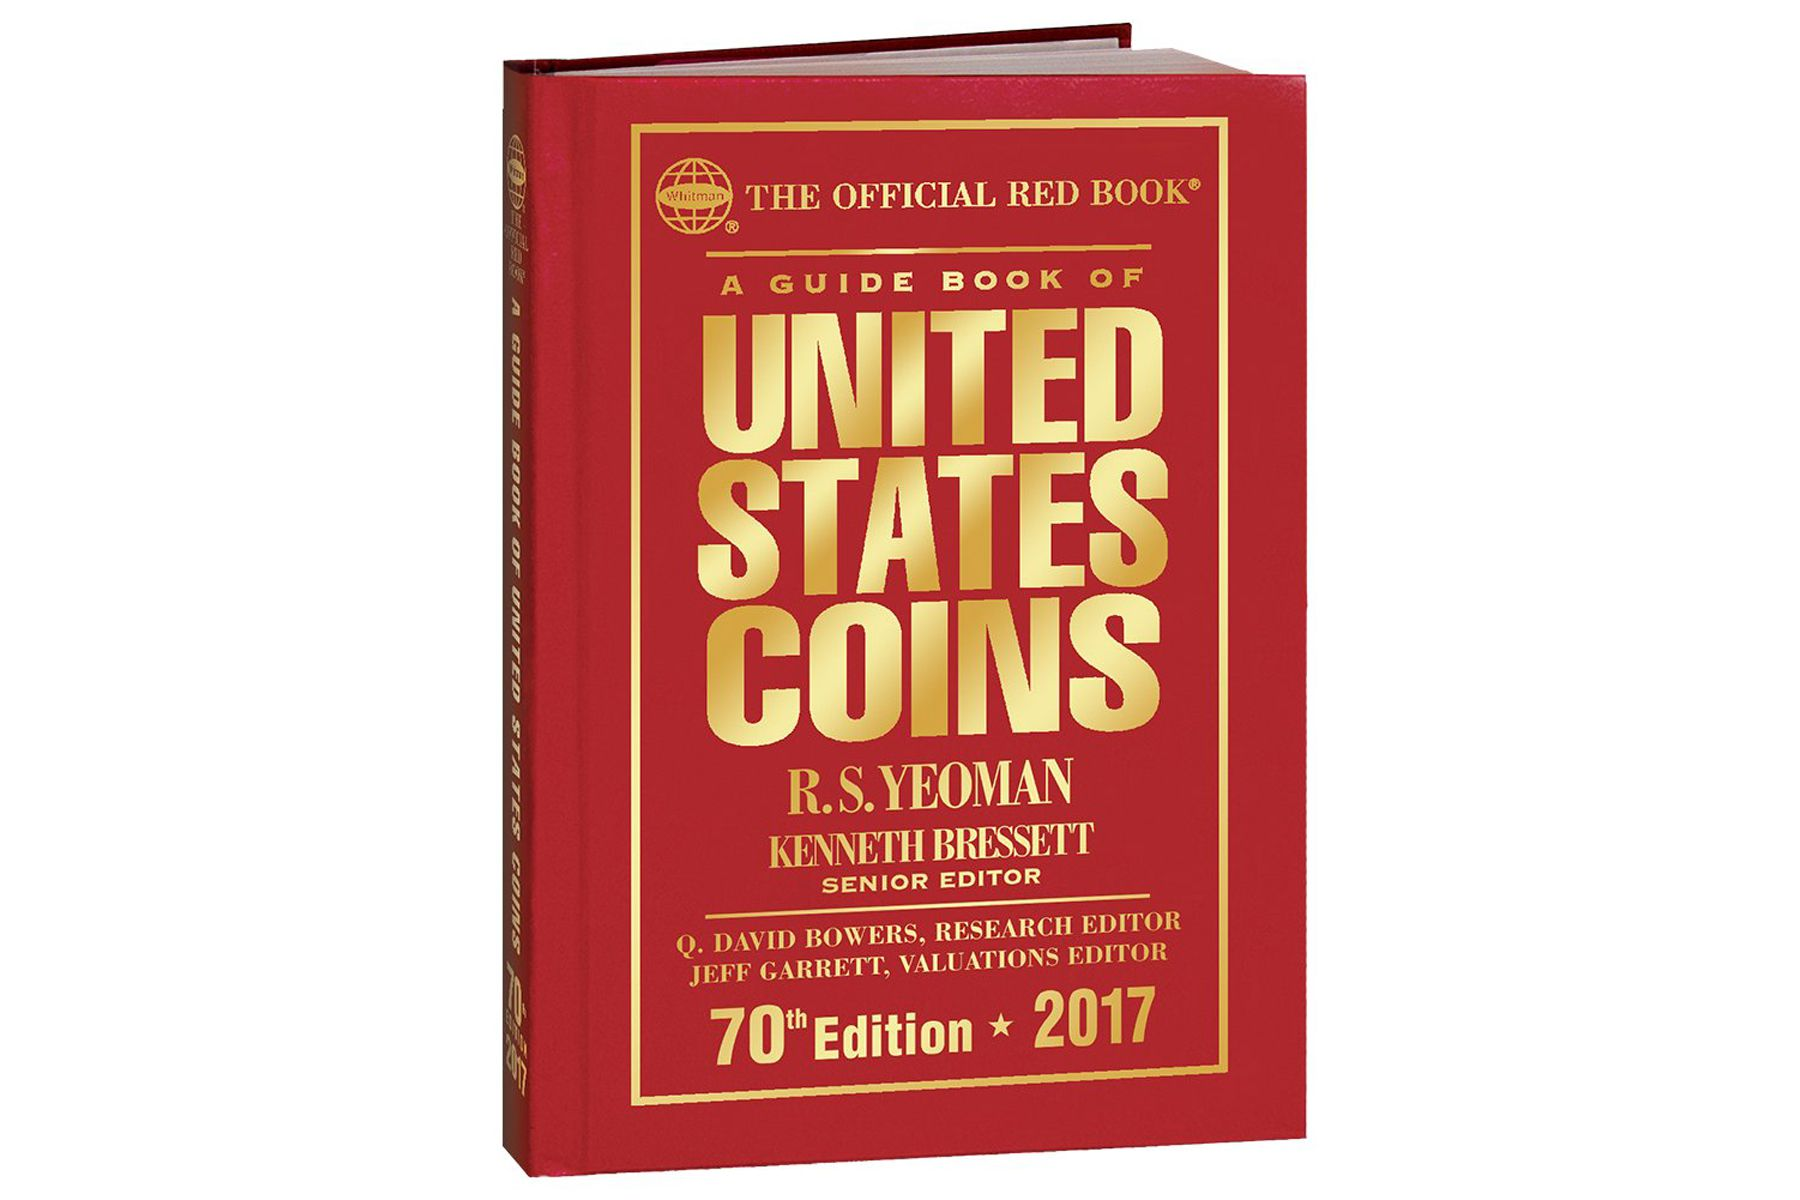 2017 Edition of a Guide Book of United States Coins